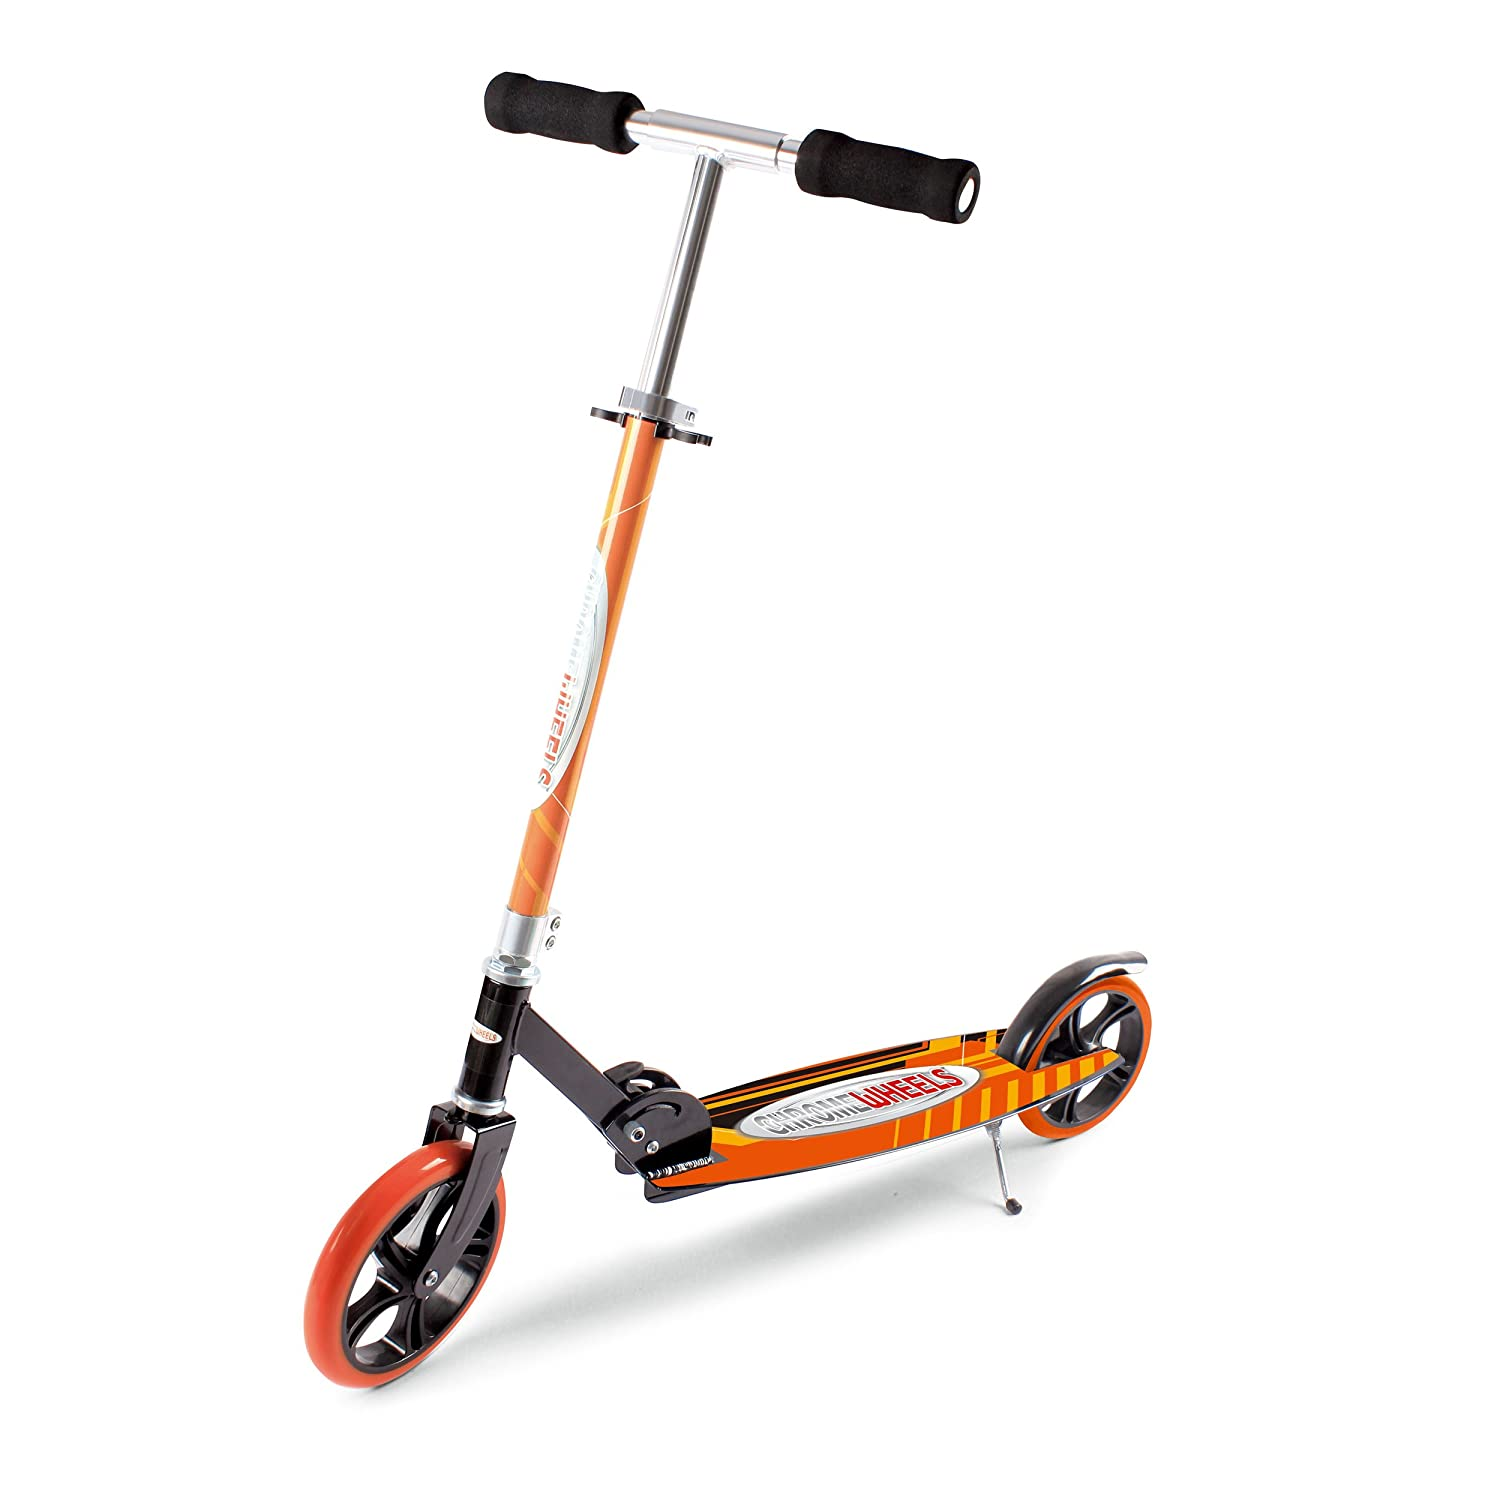 Chrome Wheels Dash Glidekick Jumbo Scooter Foldable With 8 PU Wheels -